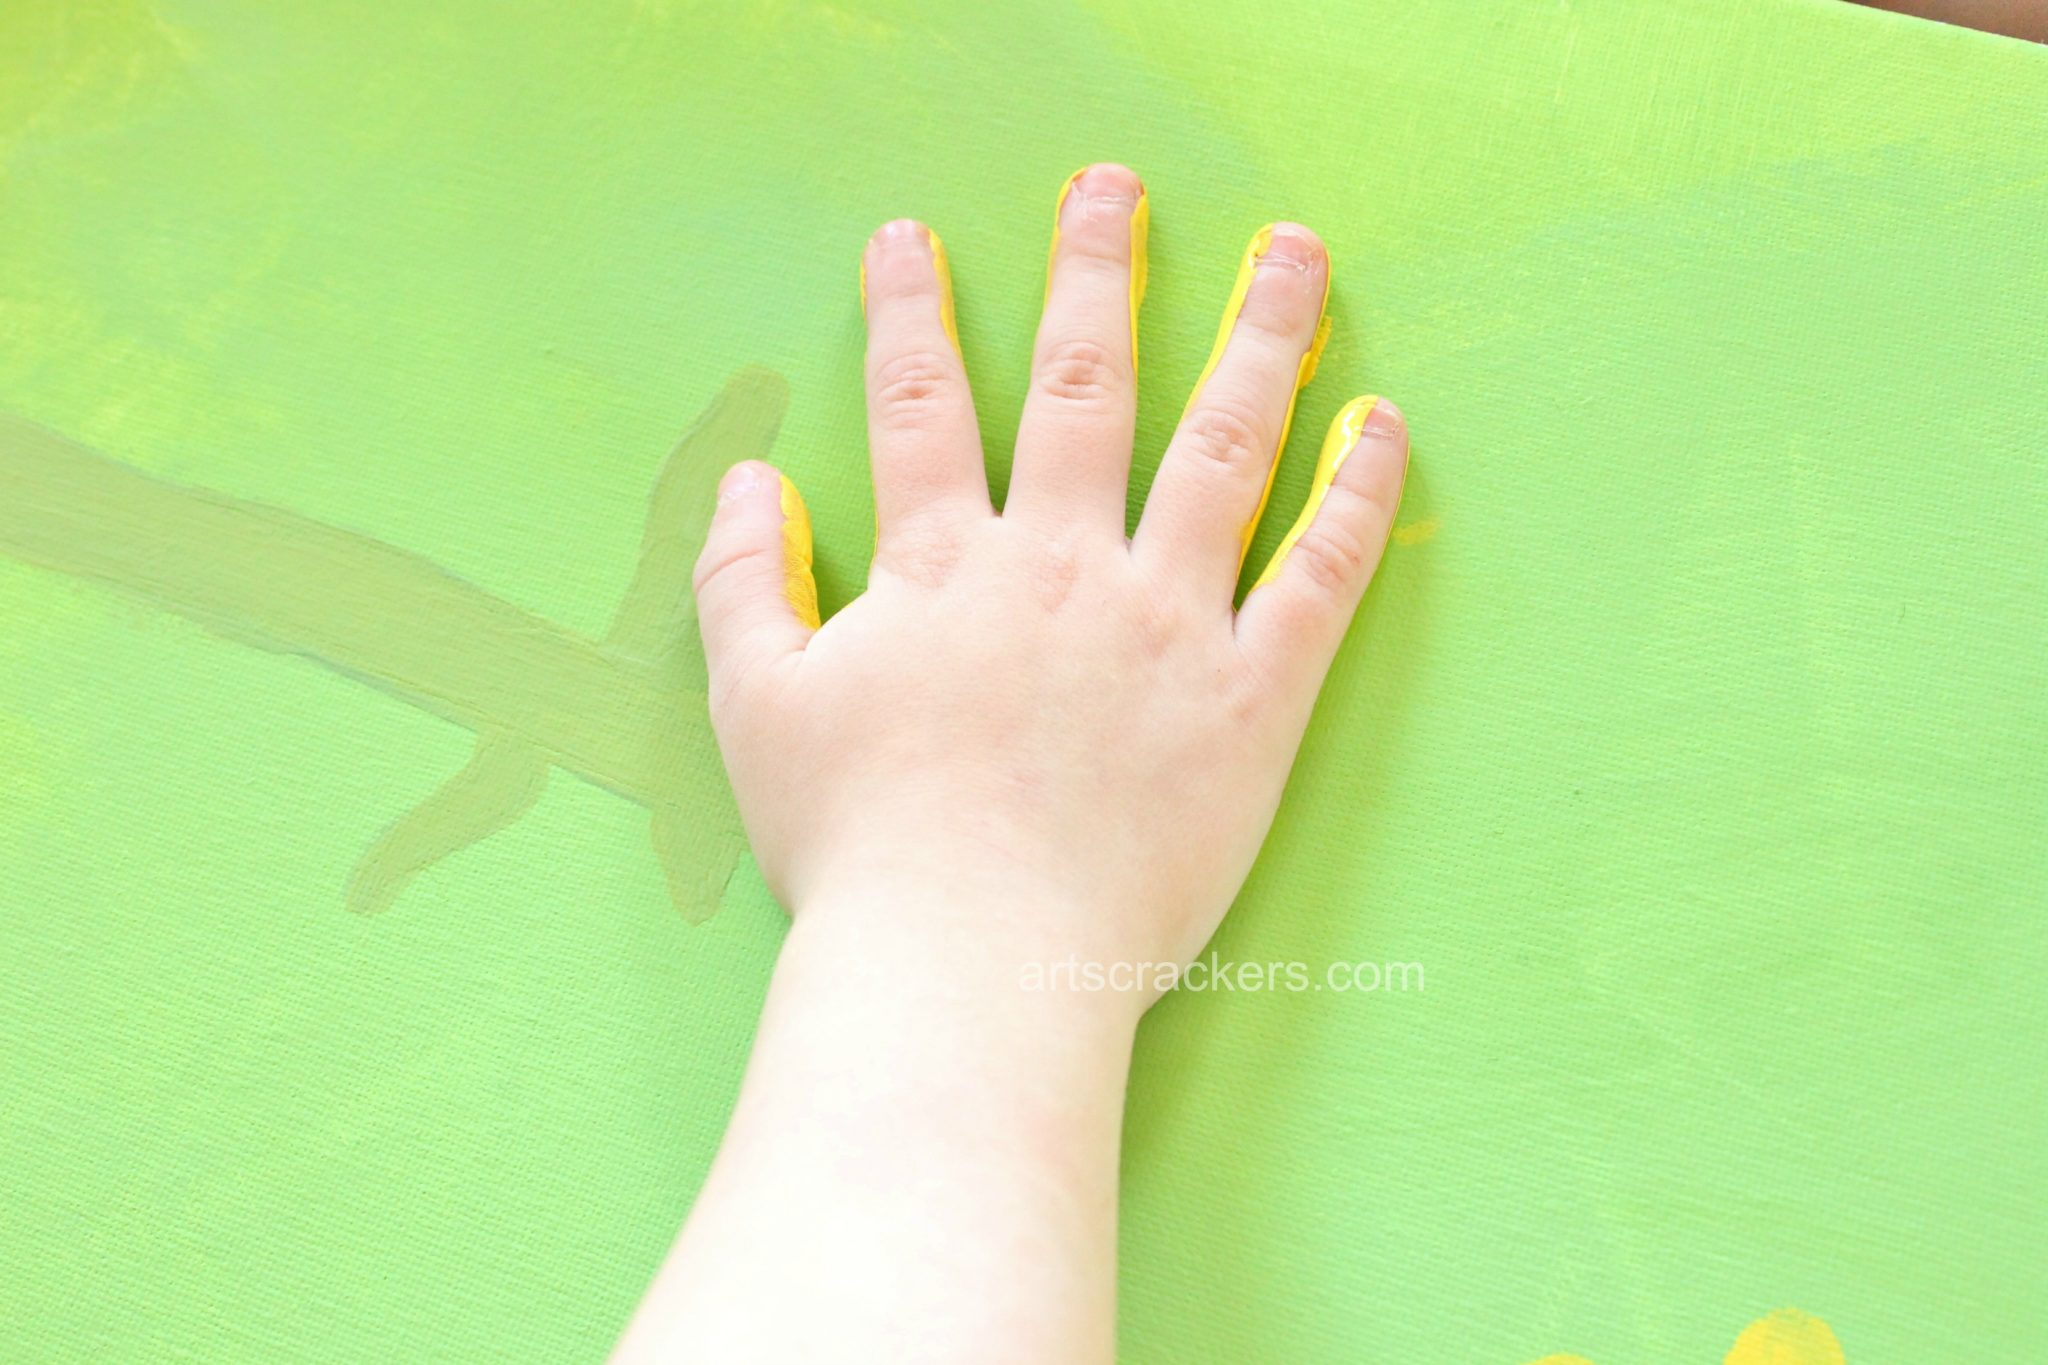 Handprint Sunflowers Canvas Step 4